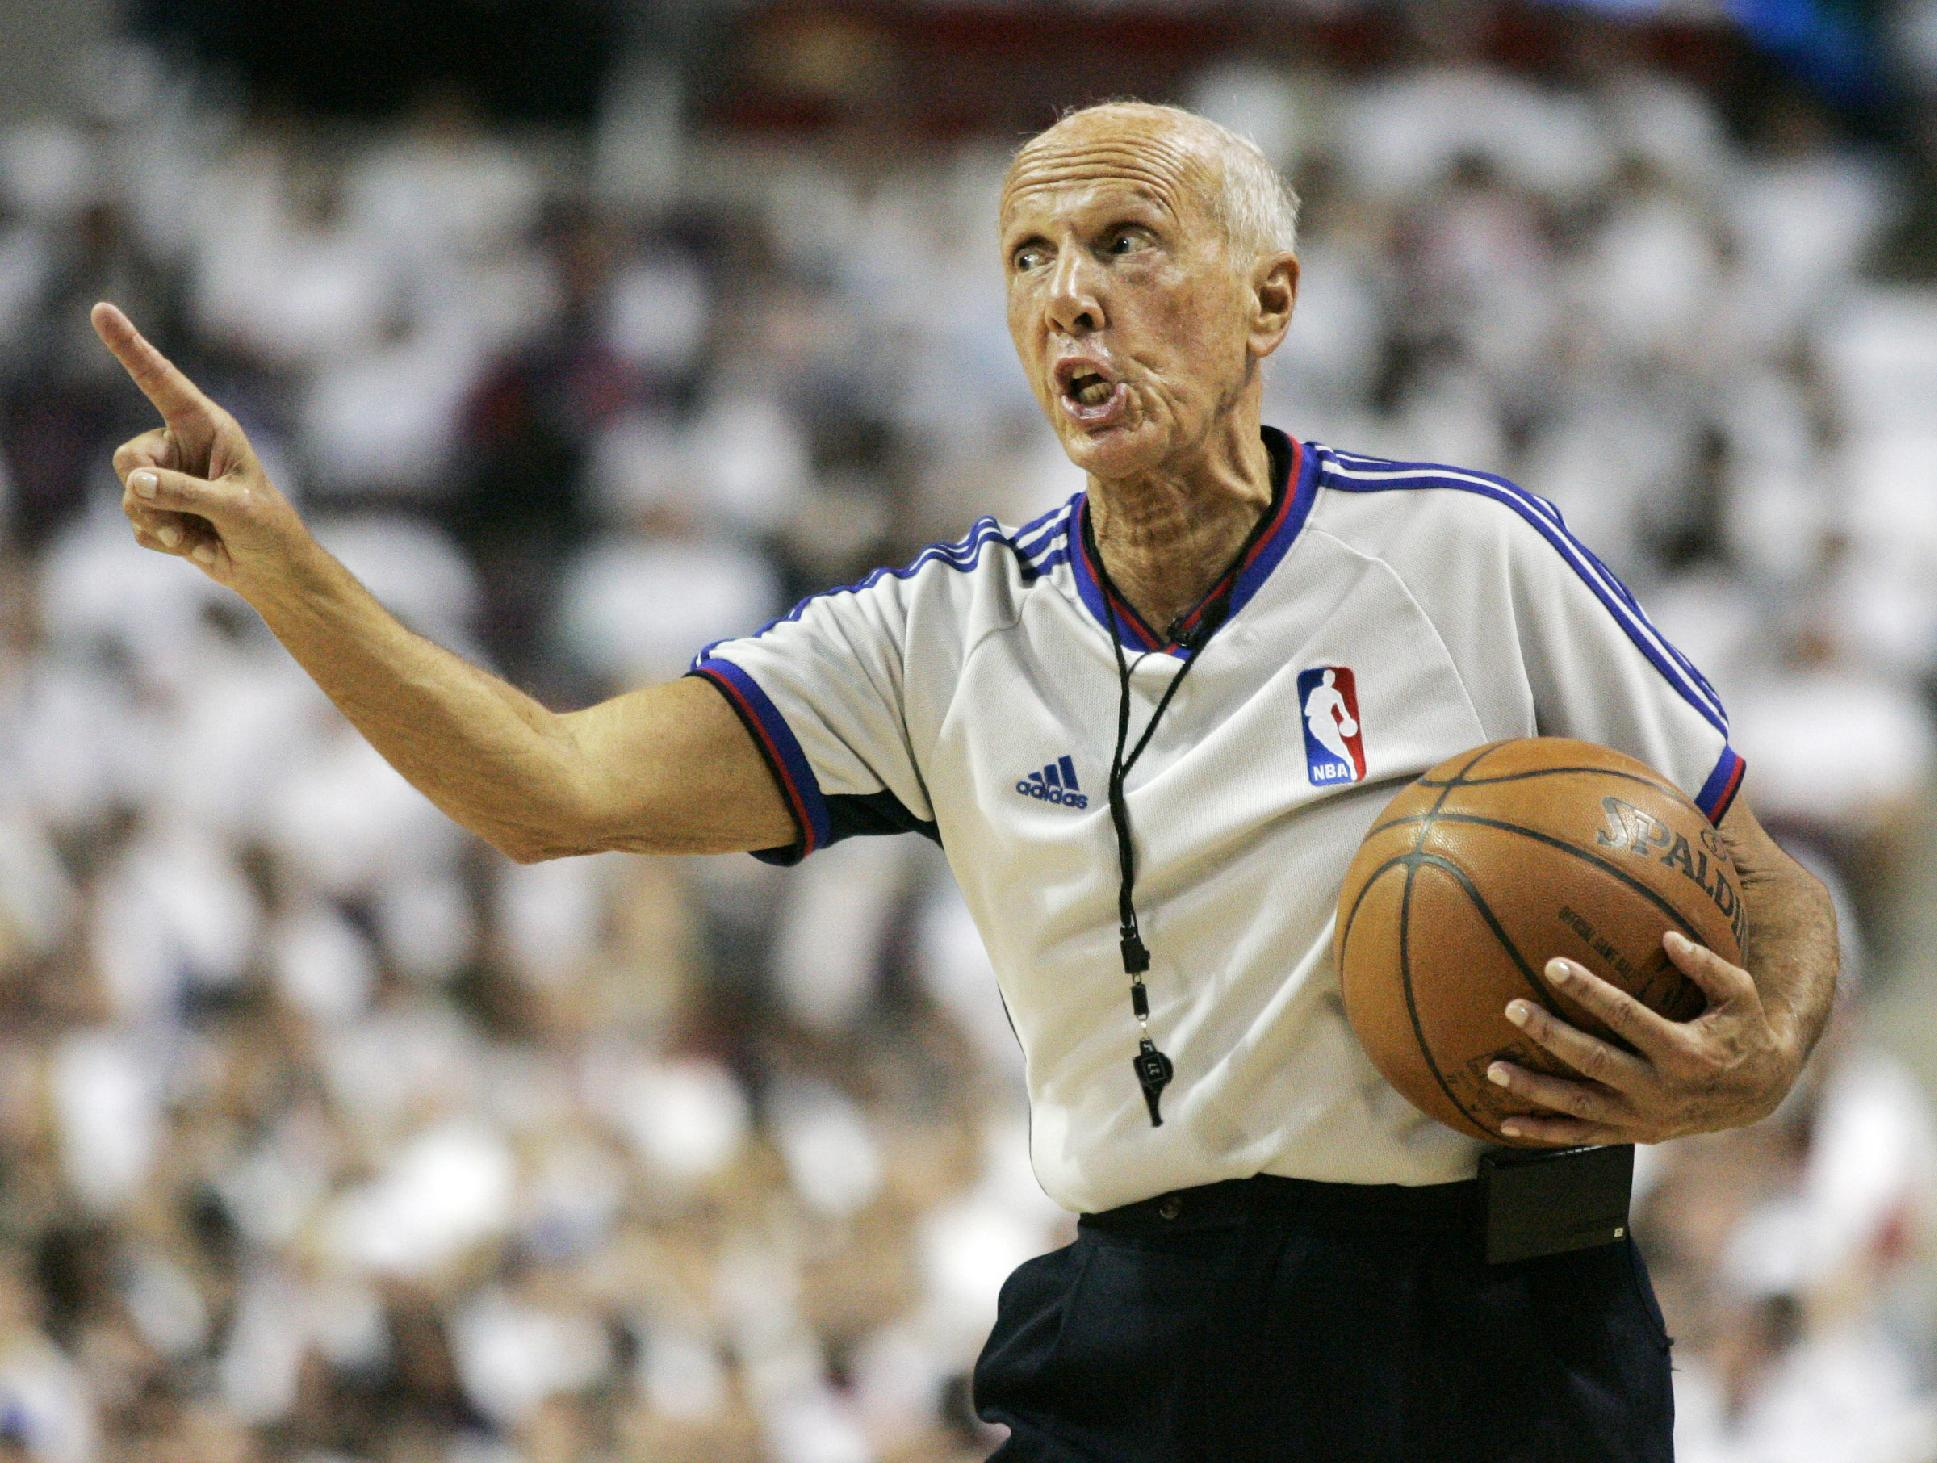 In this May 24, 2008, file photo, NBA referee Dick Bavetta makes a point during the second quarter of Game 3 of the NBA basketball Eastern Conference finals between the Boston Celtics and the Detroit Pistons in Auburn Hills, Mich. Bavetta is retiring after a 39-year career in which he never missed an assignment. NBA president Rod Thorn says Tuesday, Aug. 19, 2014, in a statement that the league is